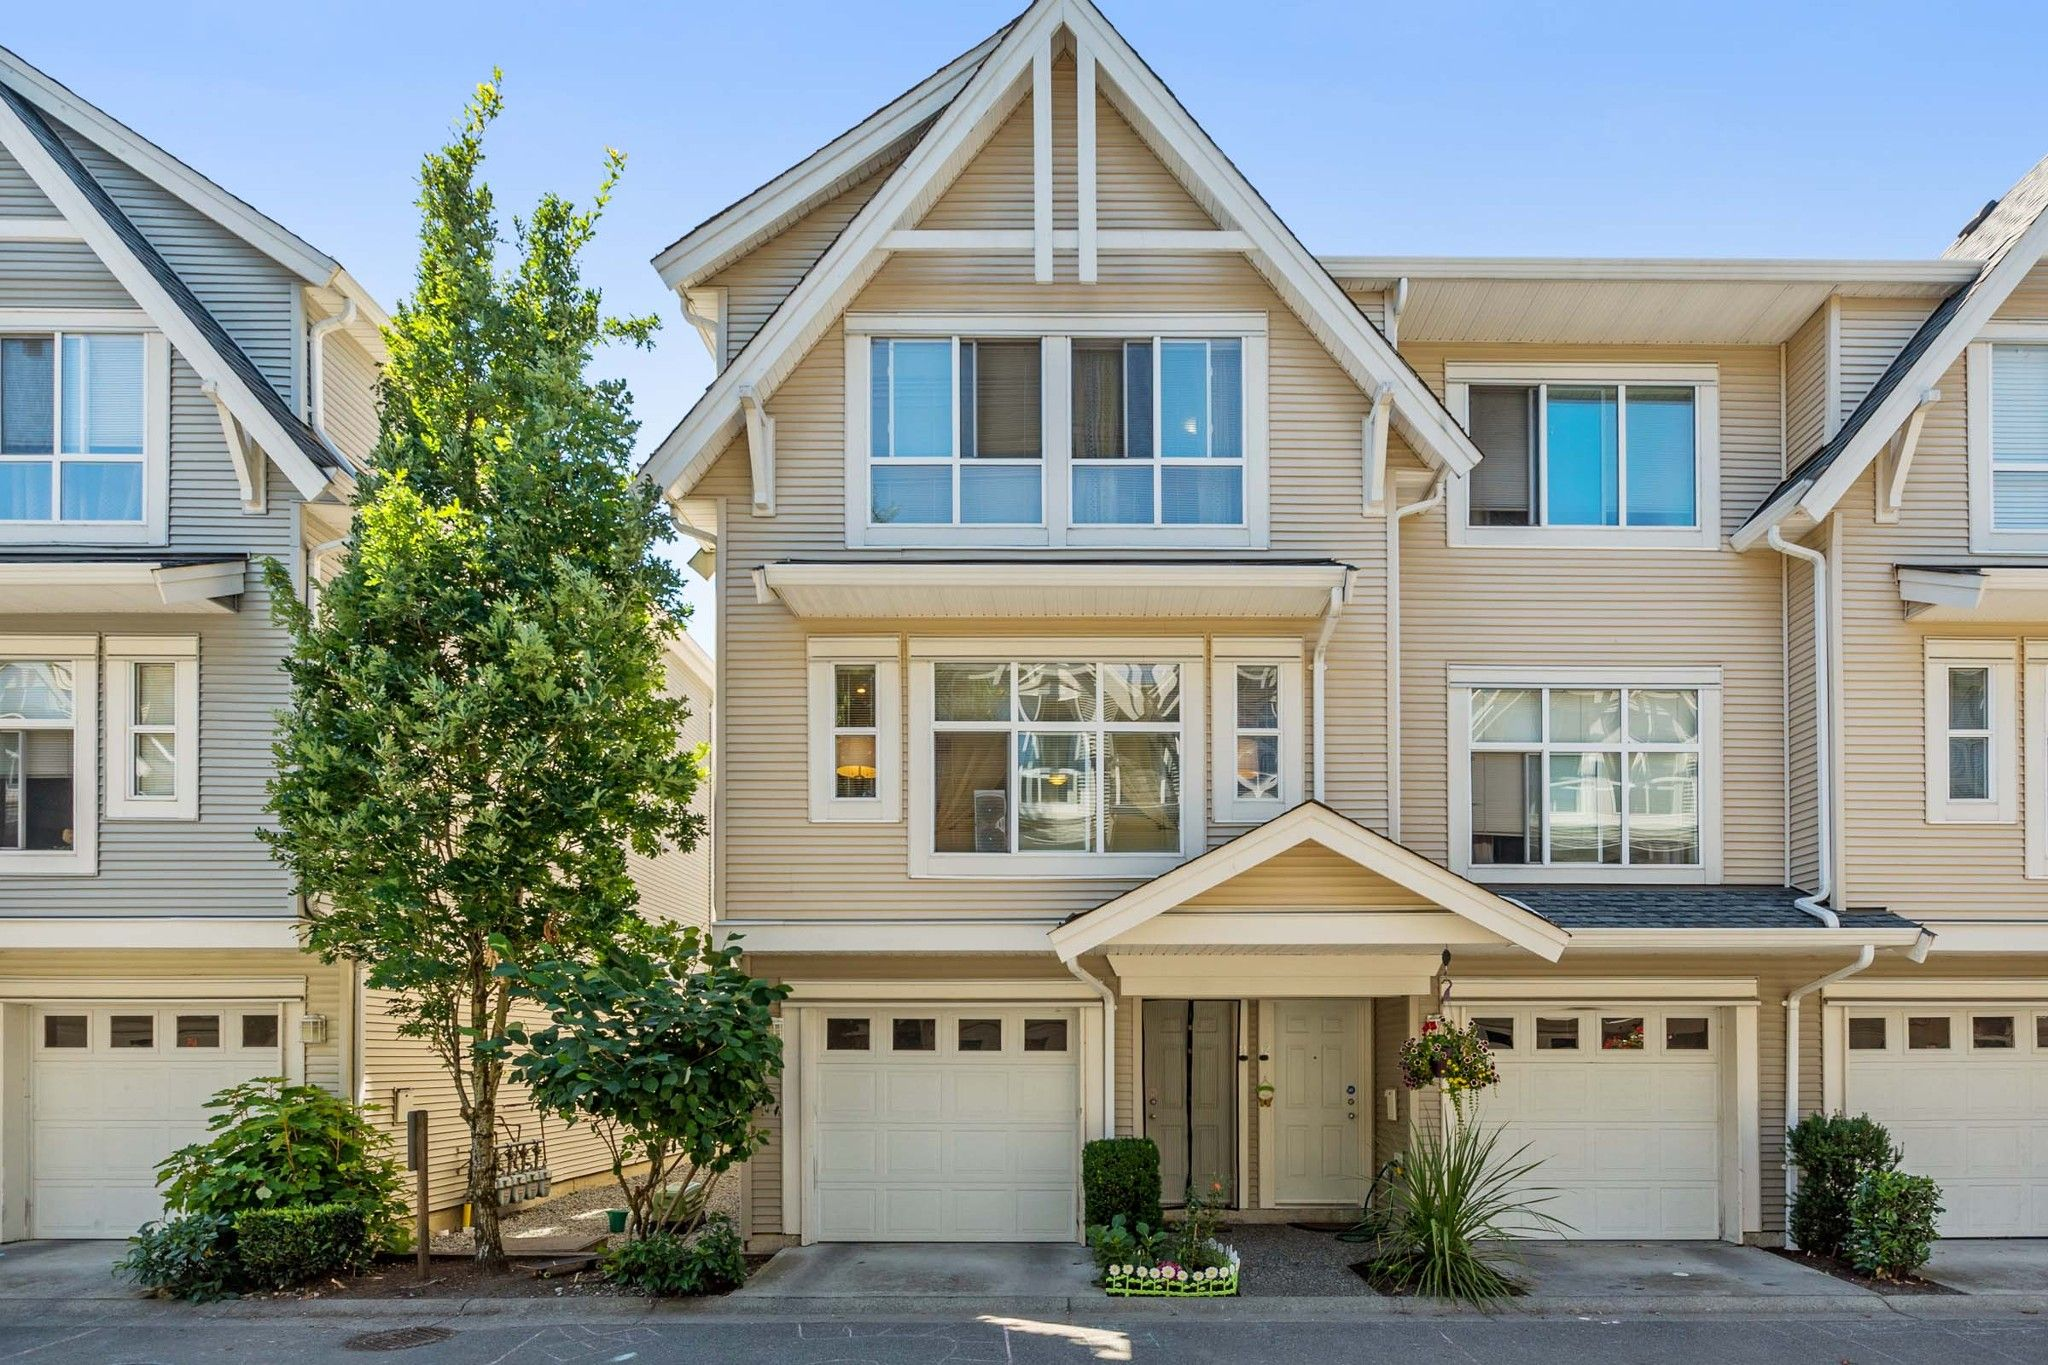 Main Photo: 11 6450 199 STREET in North Delta: Willoughby Heights Townhouse for sale ()  : MLS®# F1417861